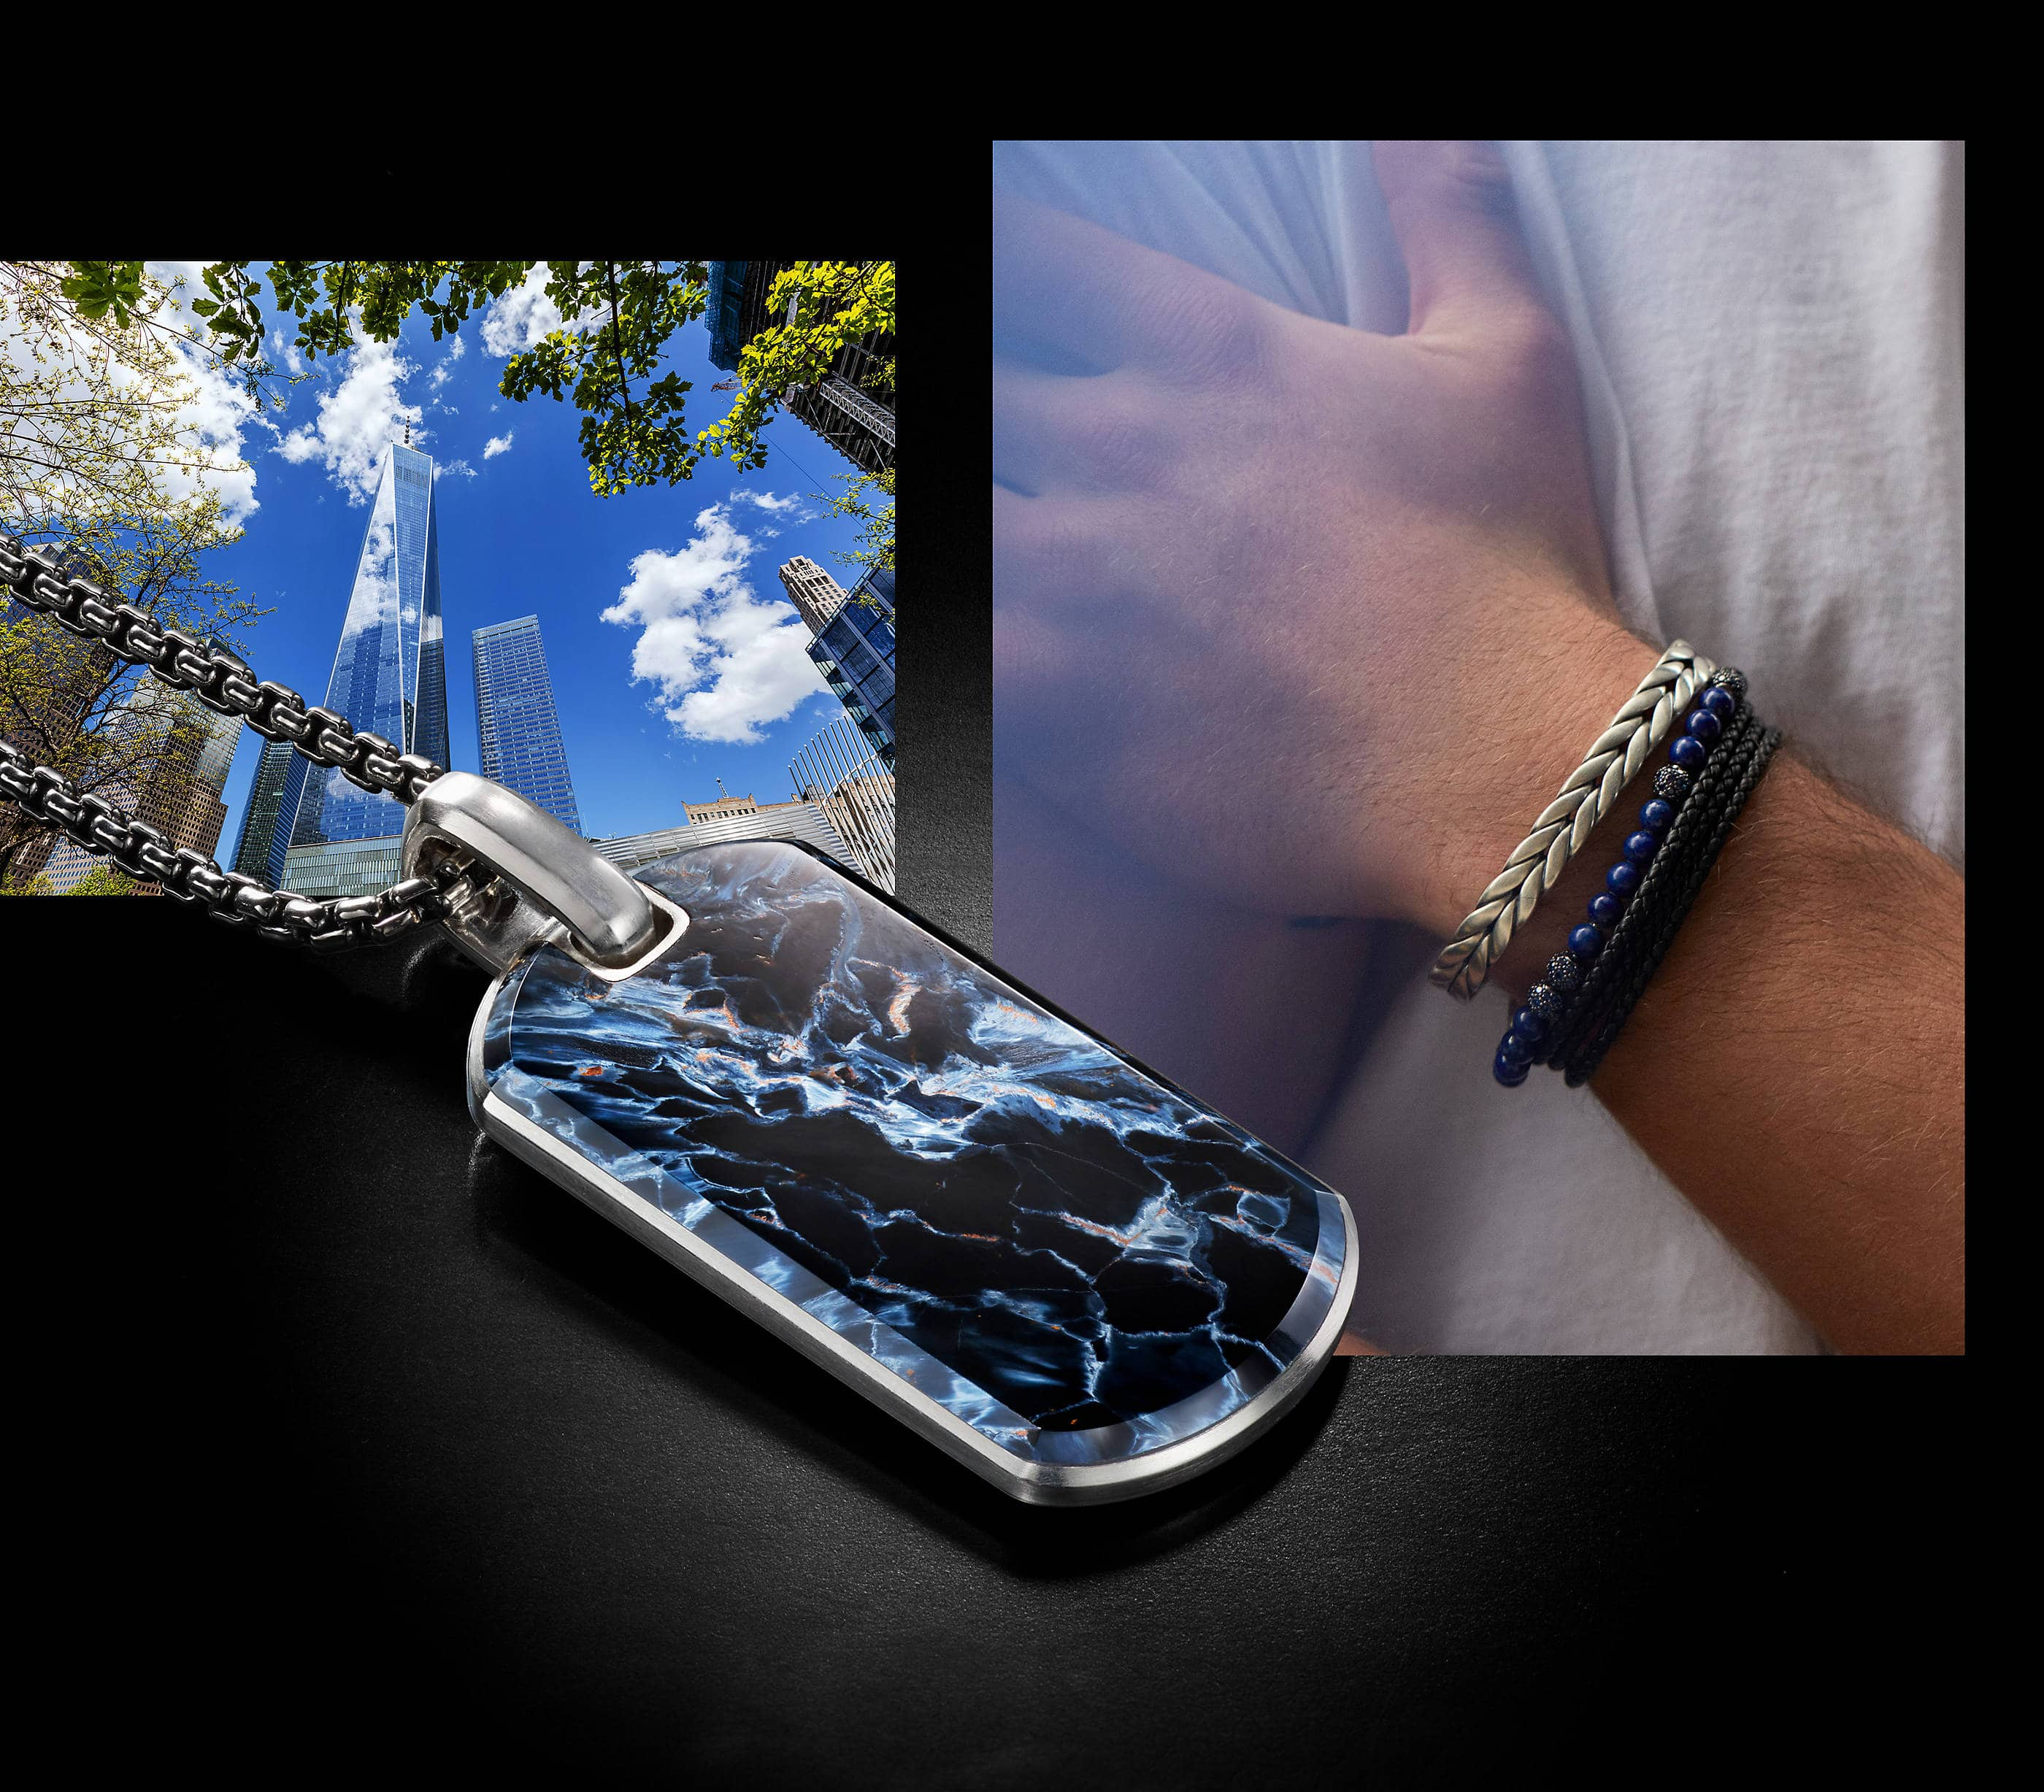 An image of a black acrylic-coated stainless steel box chain, two Chevron bracelets, and a Spiritual Beads necklace and bracelet. One Chevron cuff bracelet is crafted from sterling silver, both the Spiritual Beads necklace and bracelet are crafted from sterling silver with lapis lazuli beads and the final Chevron triple-wrap bracelet is crafted from braided black leather with a sterling silver clasp.